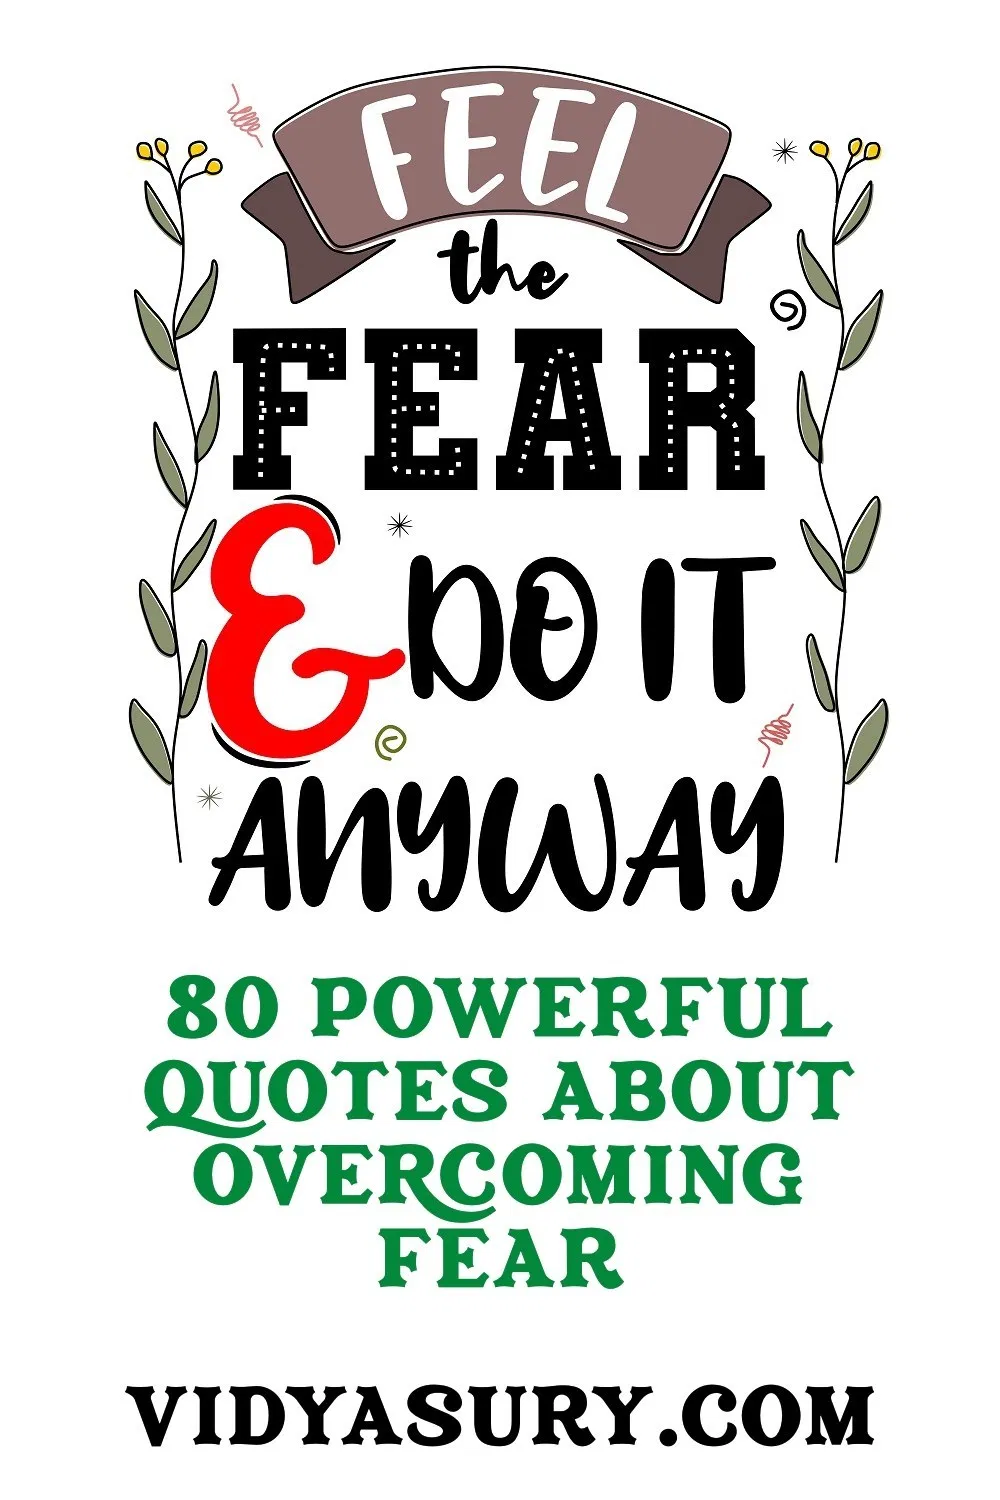 80 Powerful Quotes To Overcome Fear | Vidya Sury, Collecting Smiles